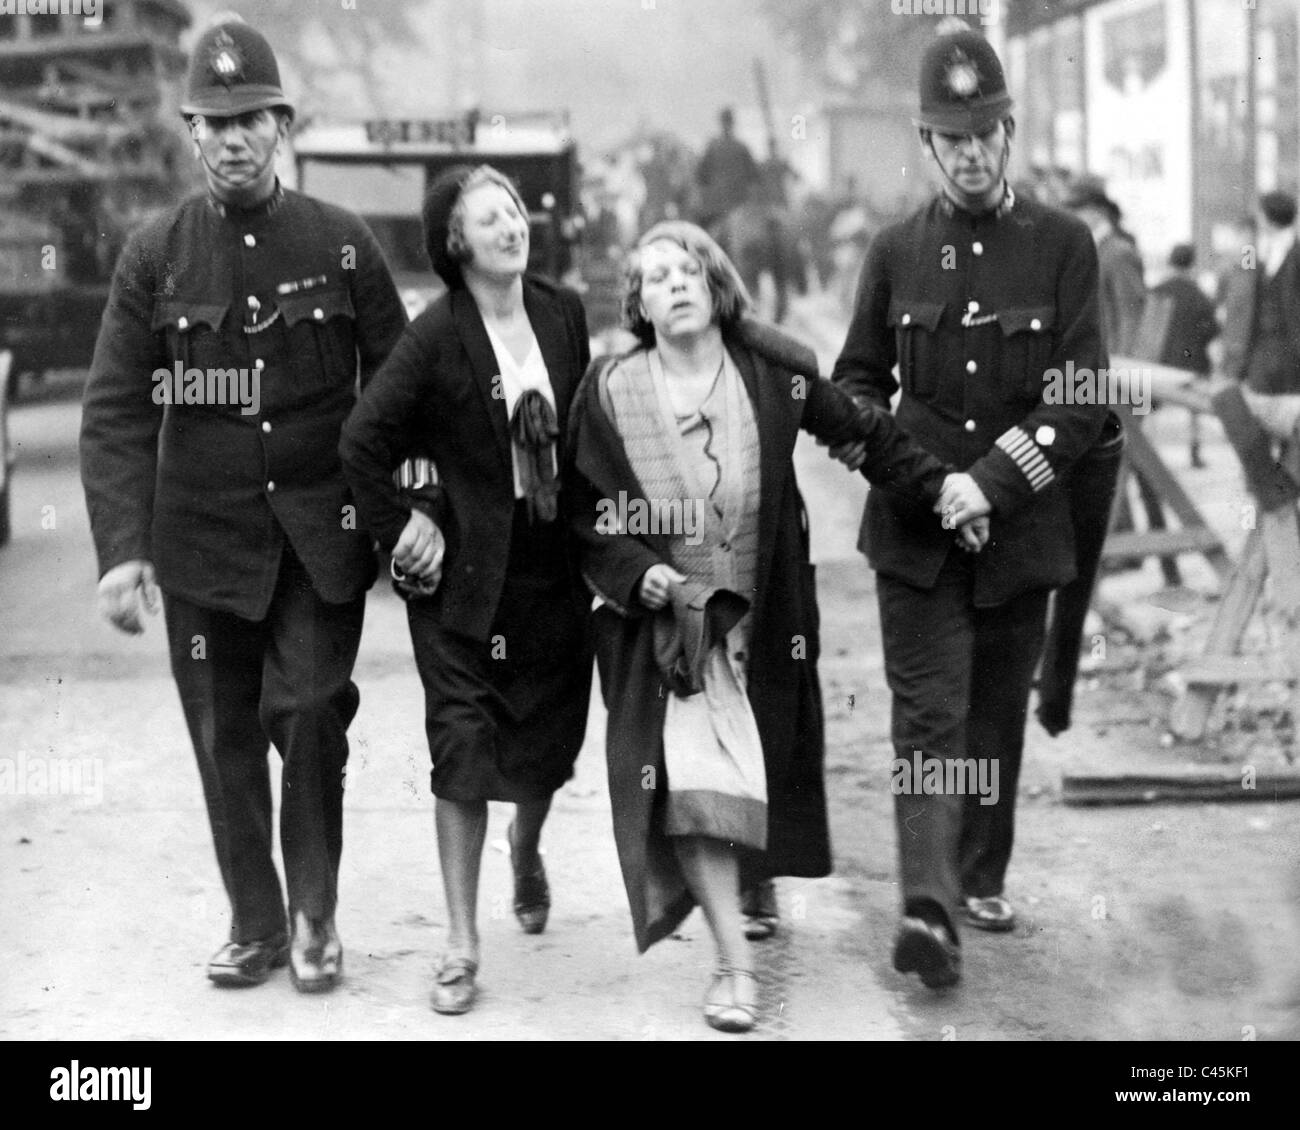 Arrest of suffragettes from London, 1928